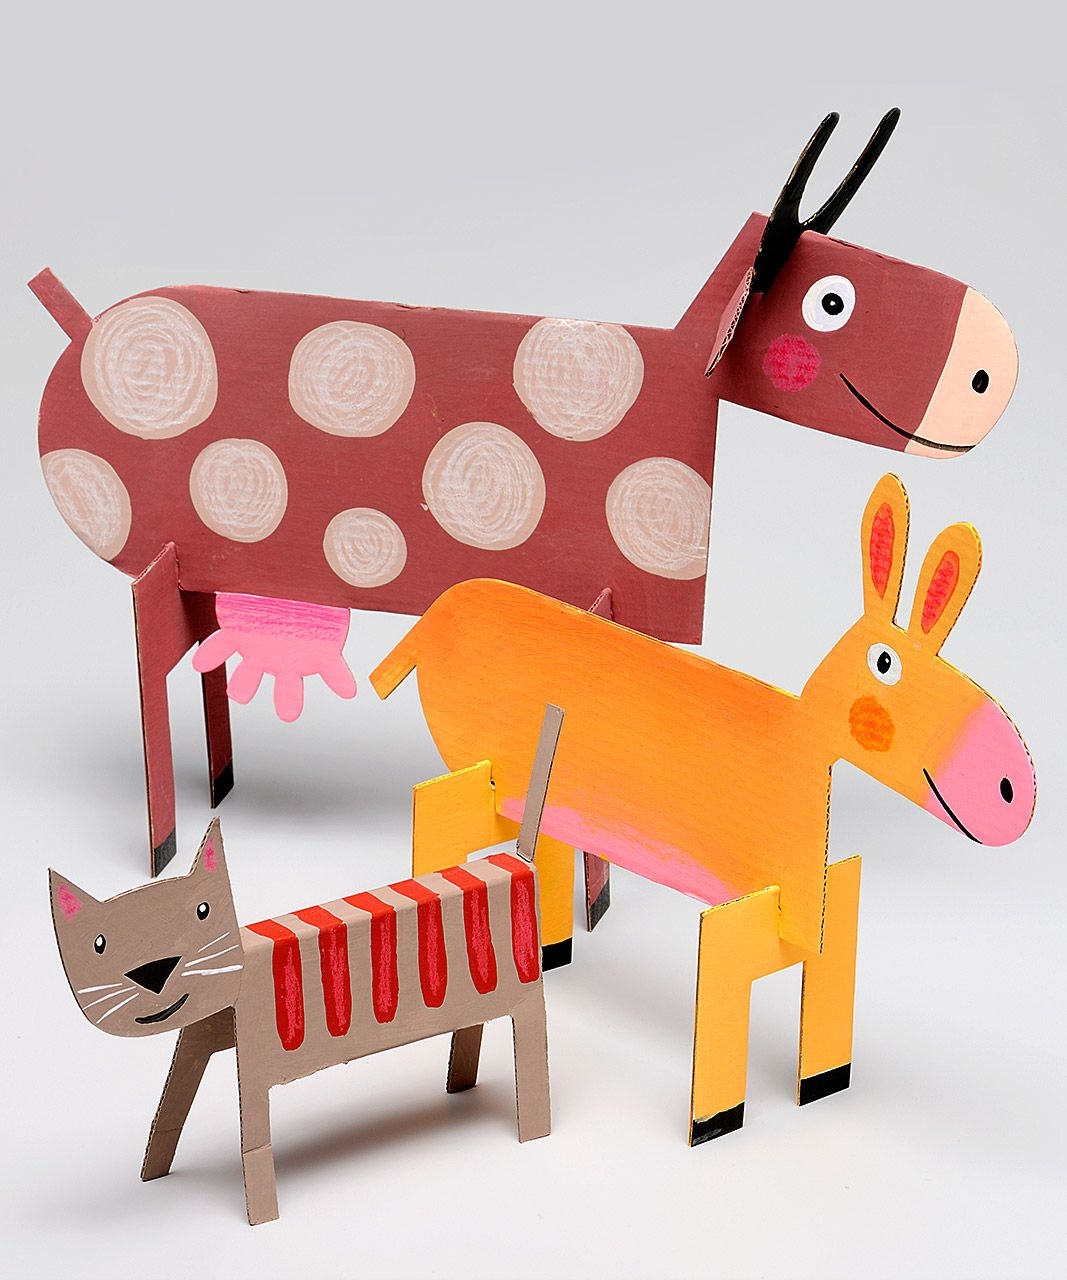 Kids crafts charming paper craft ideas with art activities for animal kids crafts charming paper jeuxipadfo Image collections